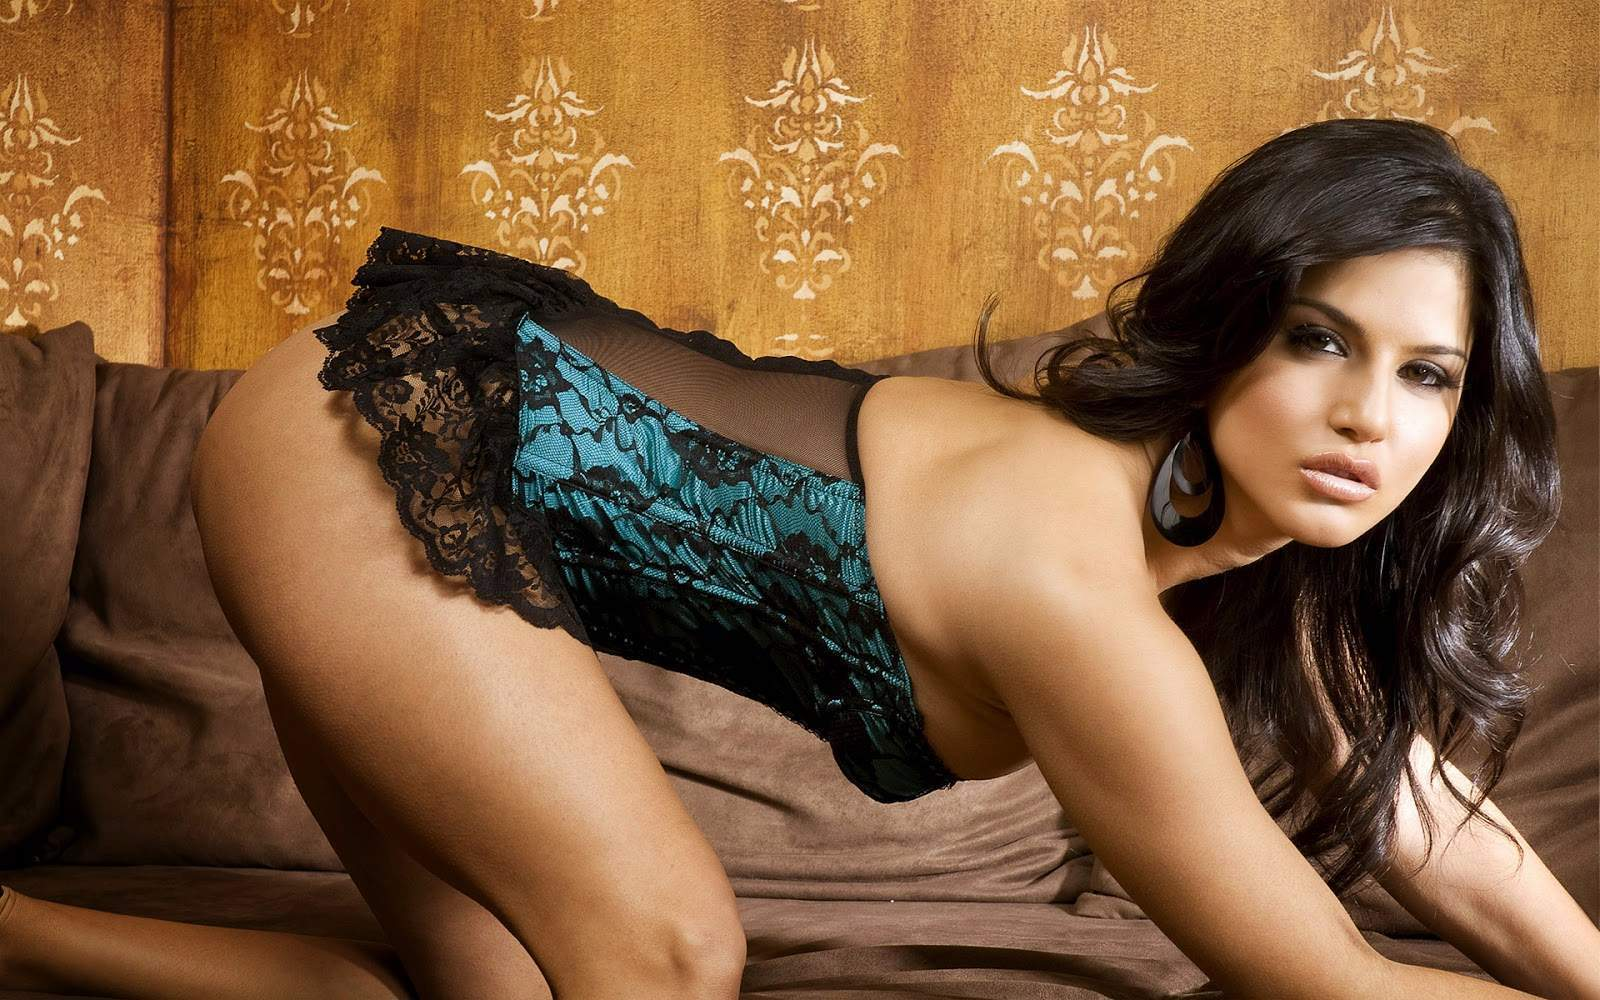 7 Interesting Facts About Sunny Leone That Will Make Any -8527